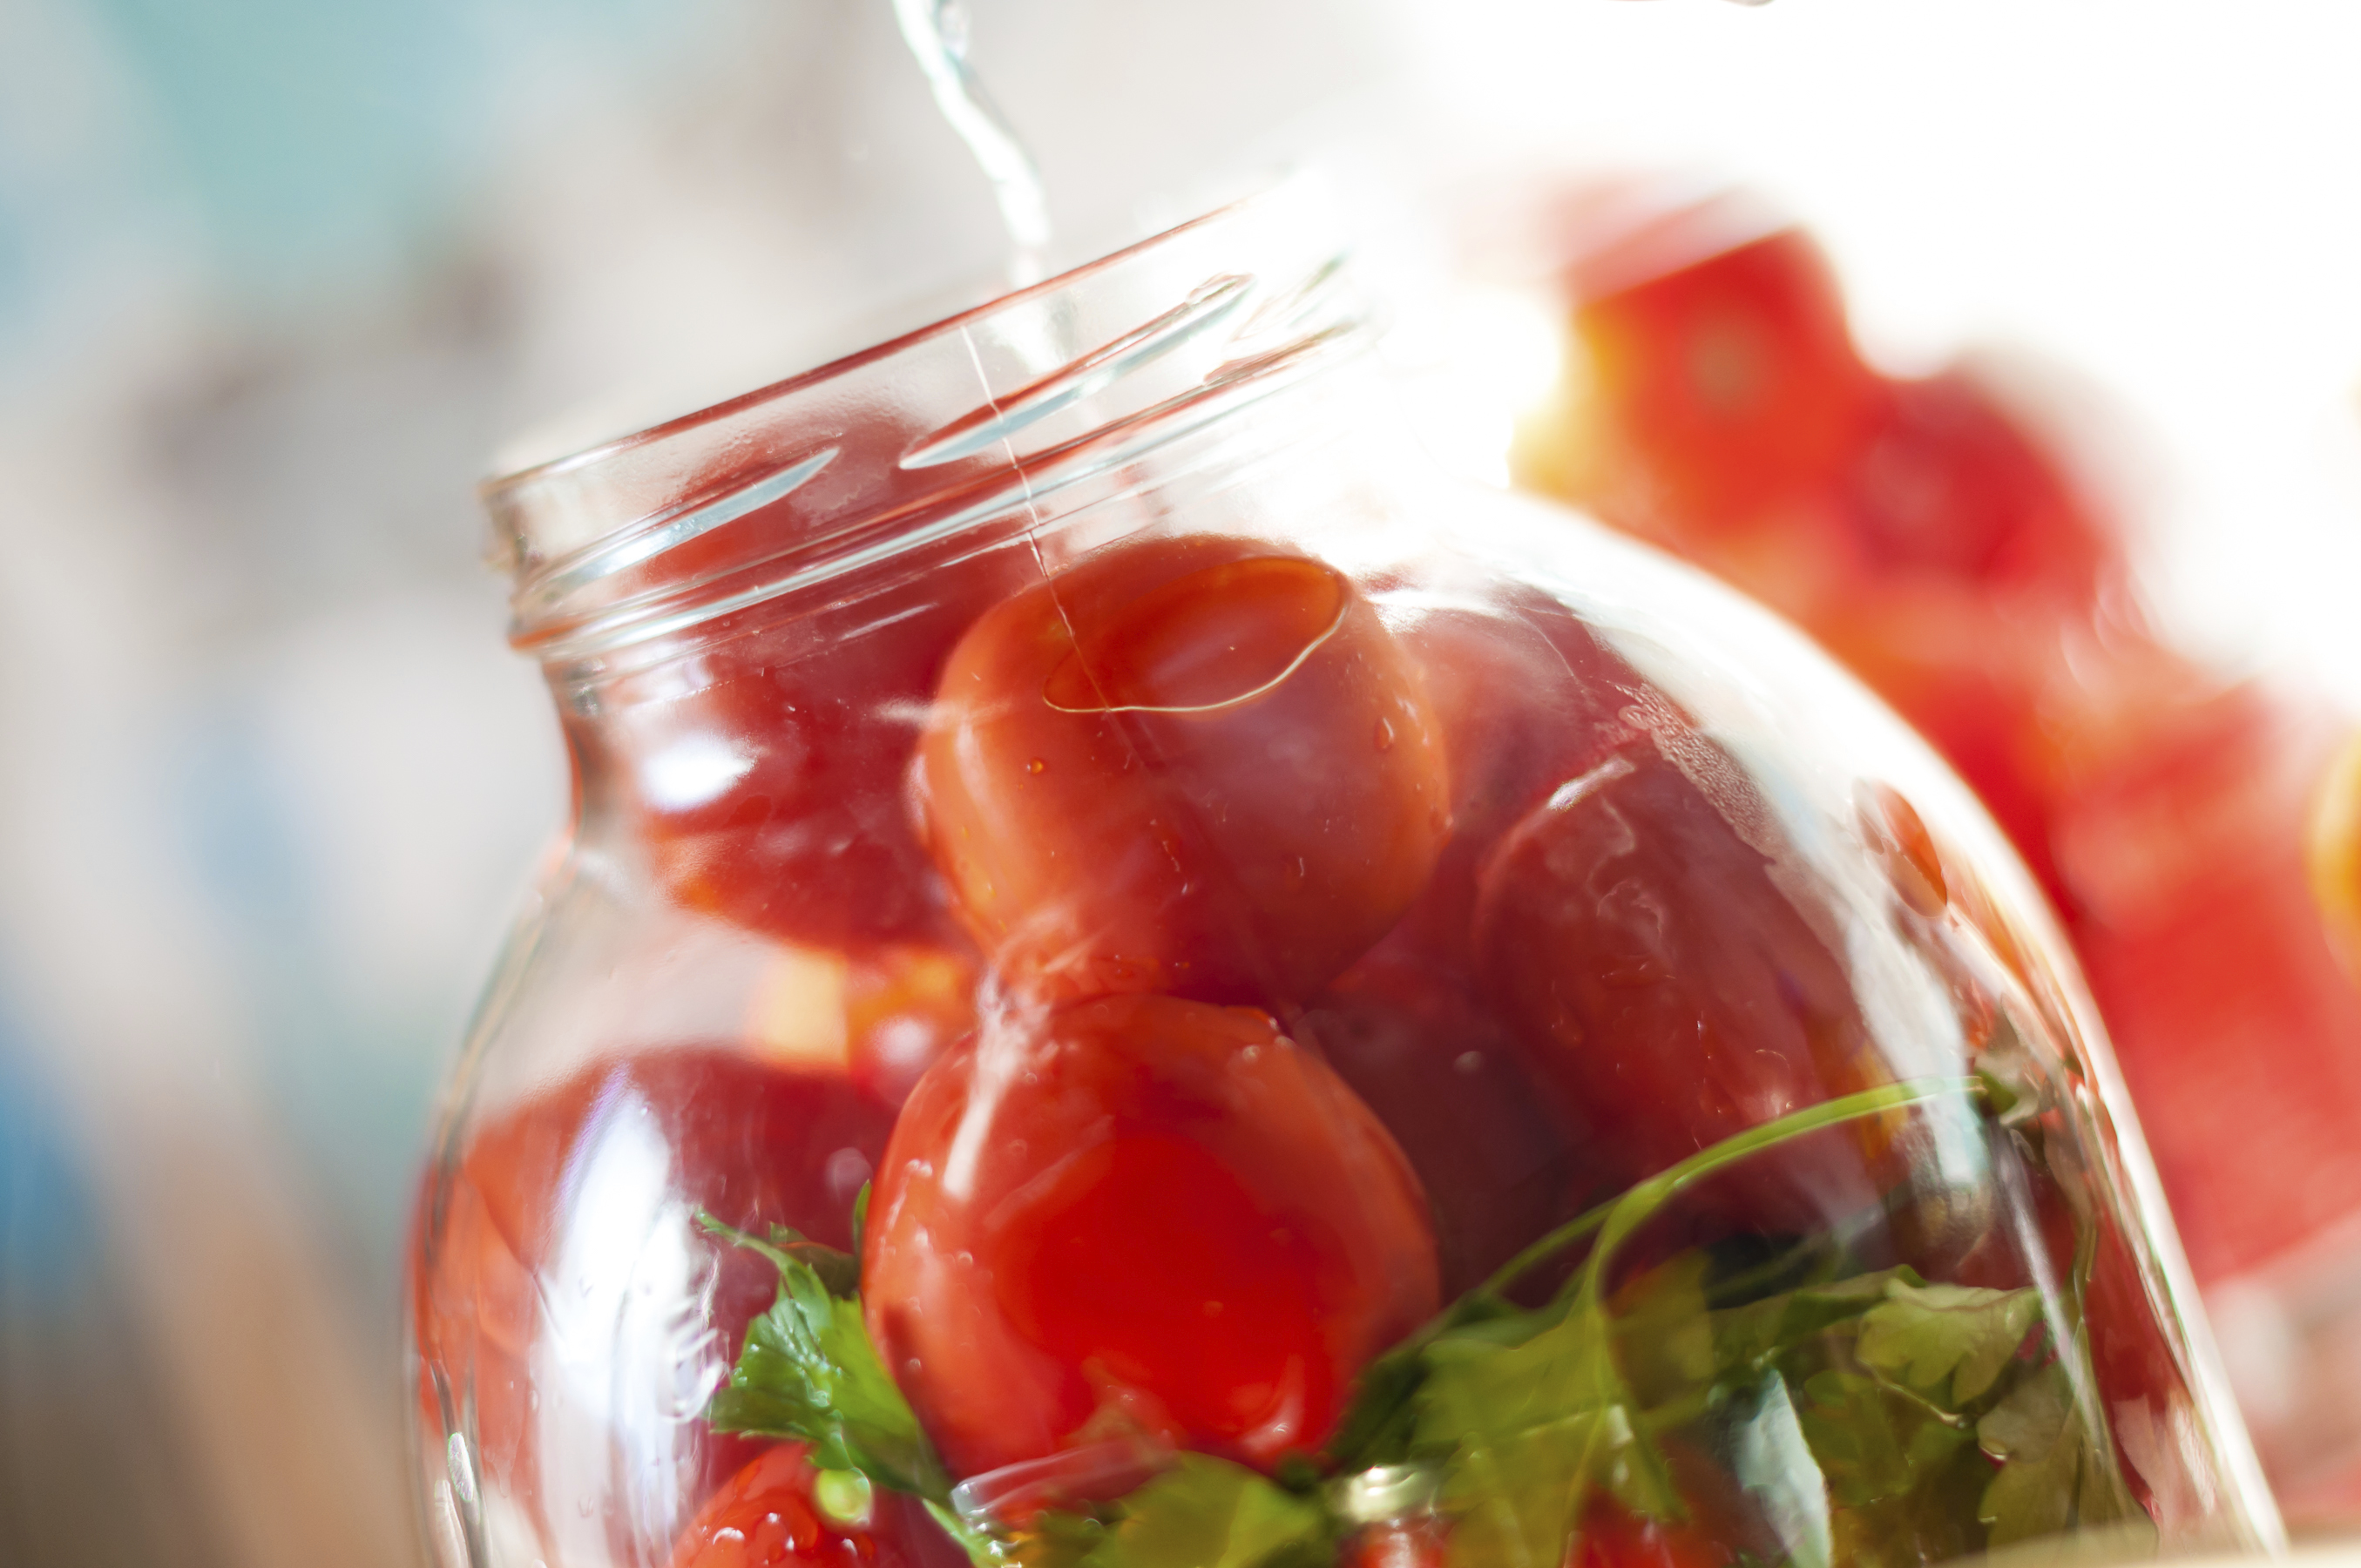 Tomatoes being swamped boiled water in process of canning. Canned tomato - good winter vegeterian food.